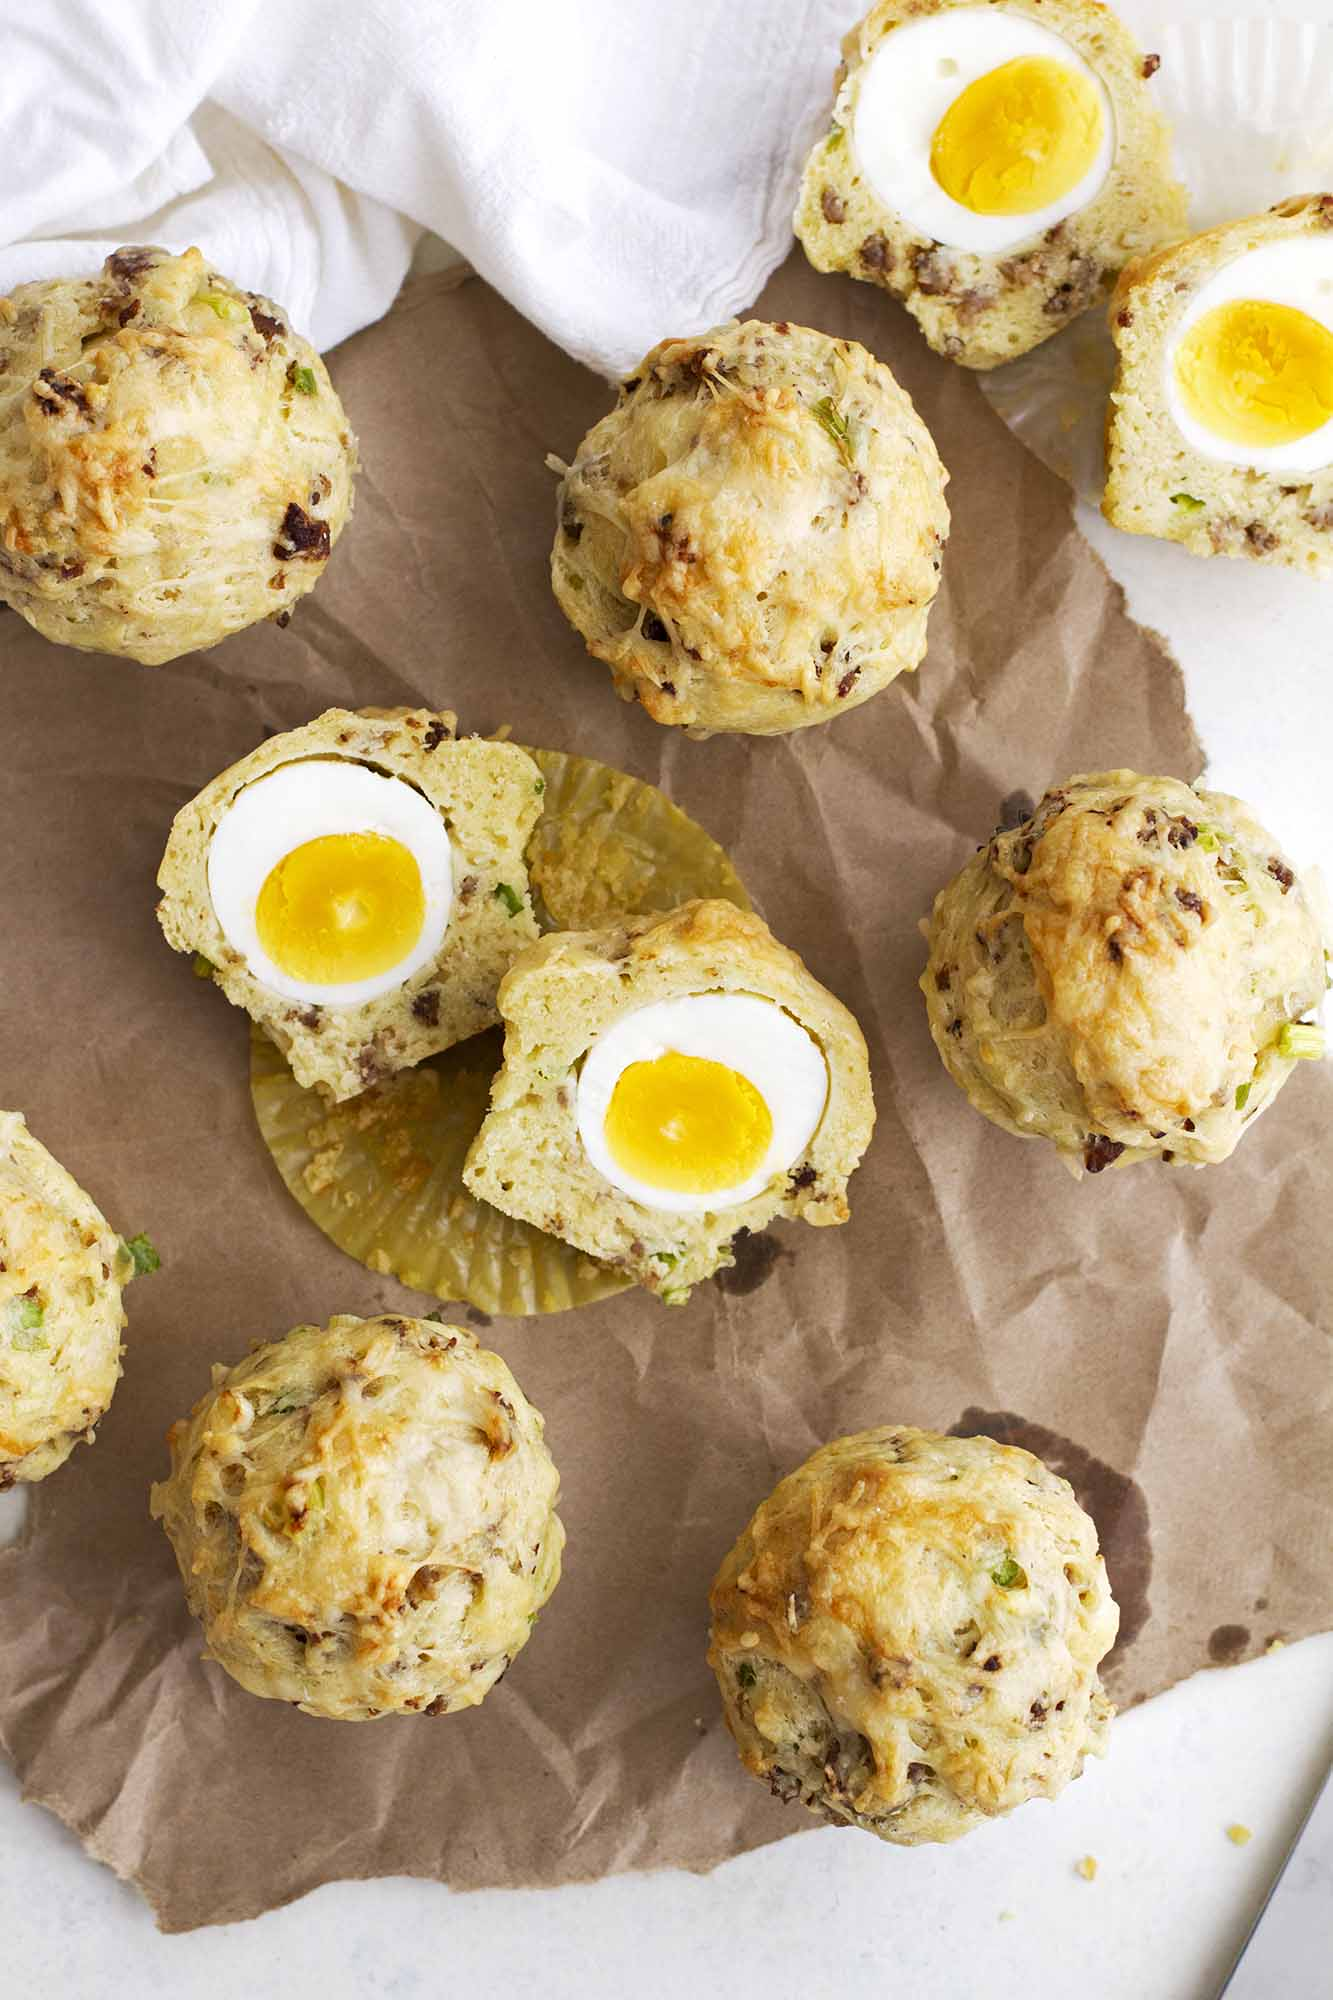 Breakfast Egg and Cheese Muffins | girlversusdough.com @girlversusdough